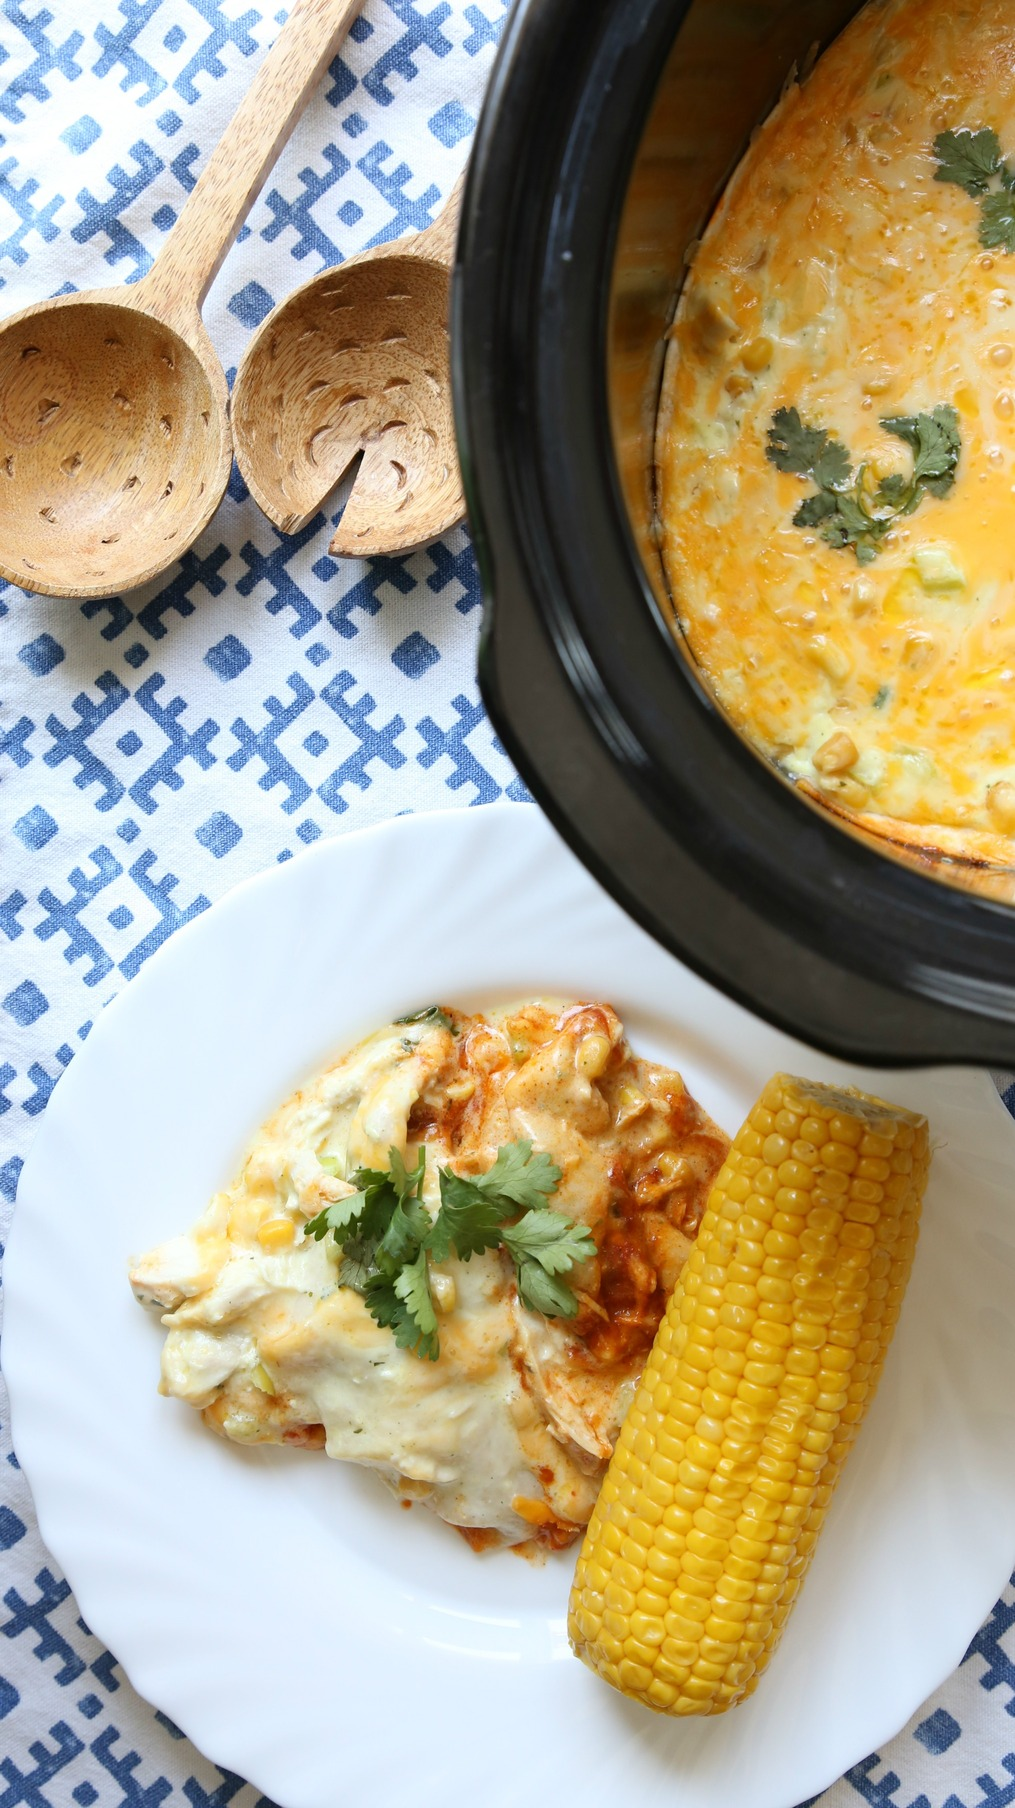 Chicken Recipes. No matter the crowd, venue or time of year, slow cooker chicken Special Offers · Advanced Search · Cooking Tips · Mother's DayCategories: Appetizer Recipes, Breakfast Recipes, Cooking Tips and more.